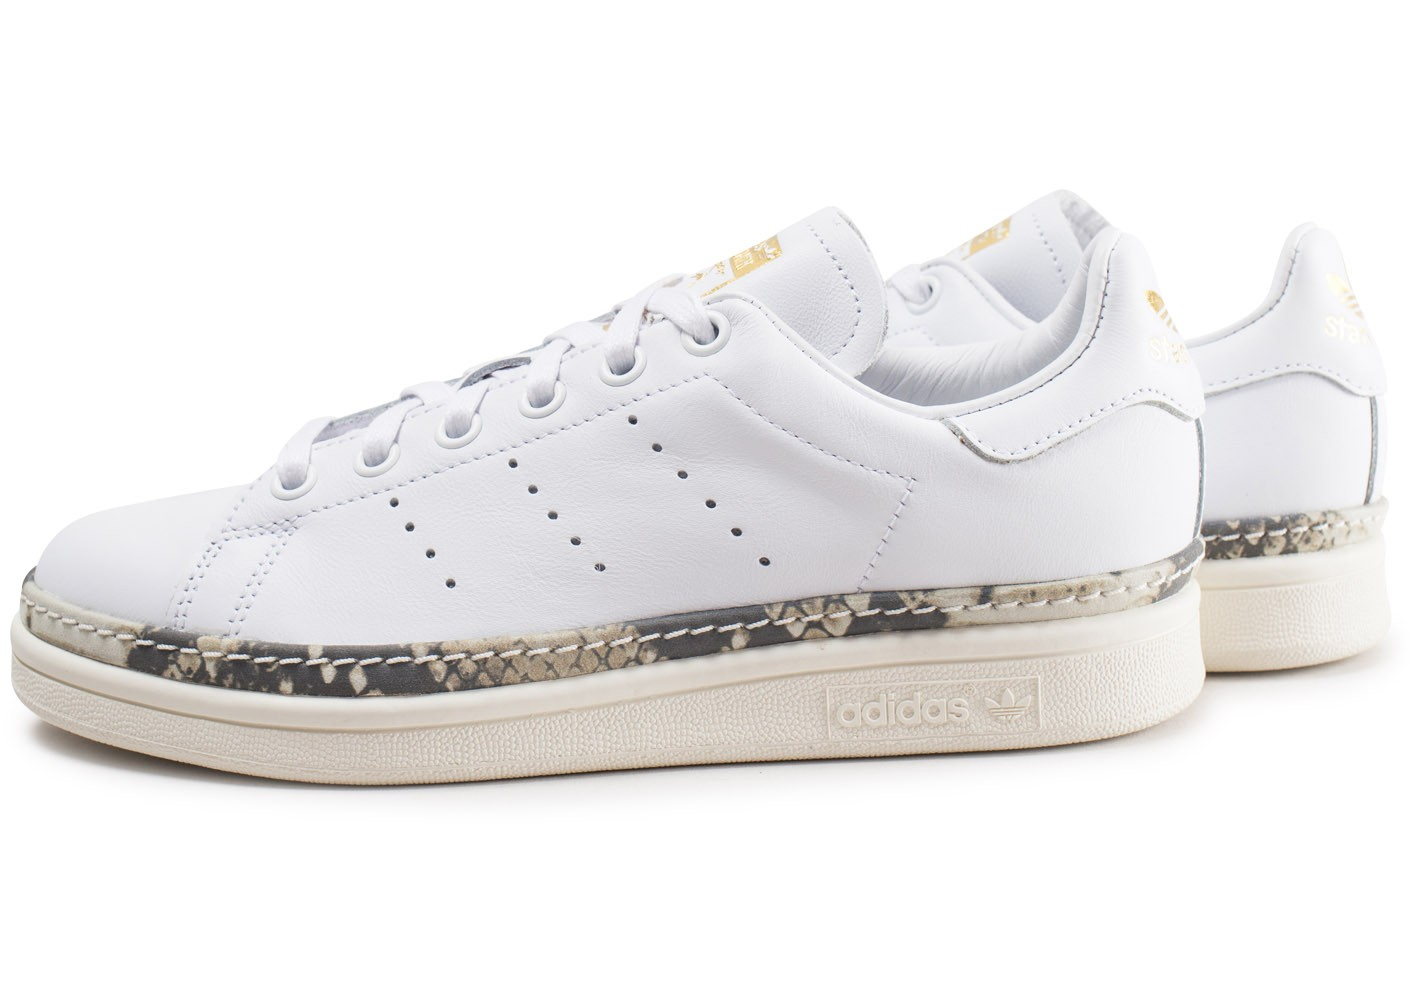 adidas stan smith new bold blanche femme chaussures. Black Bedroom Furniture Sets. Home Design Ideas